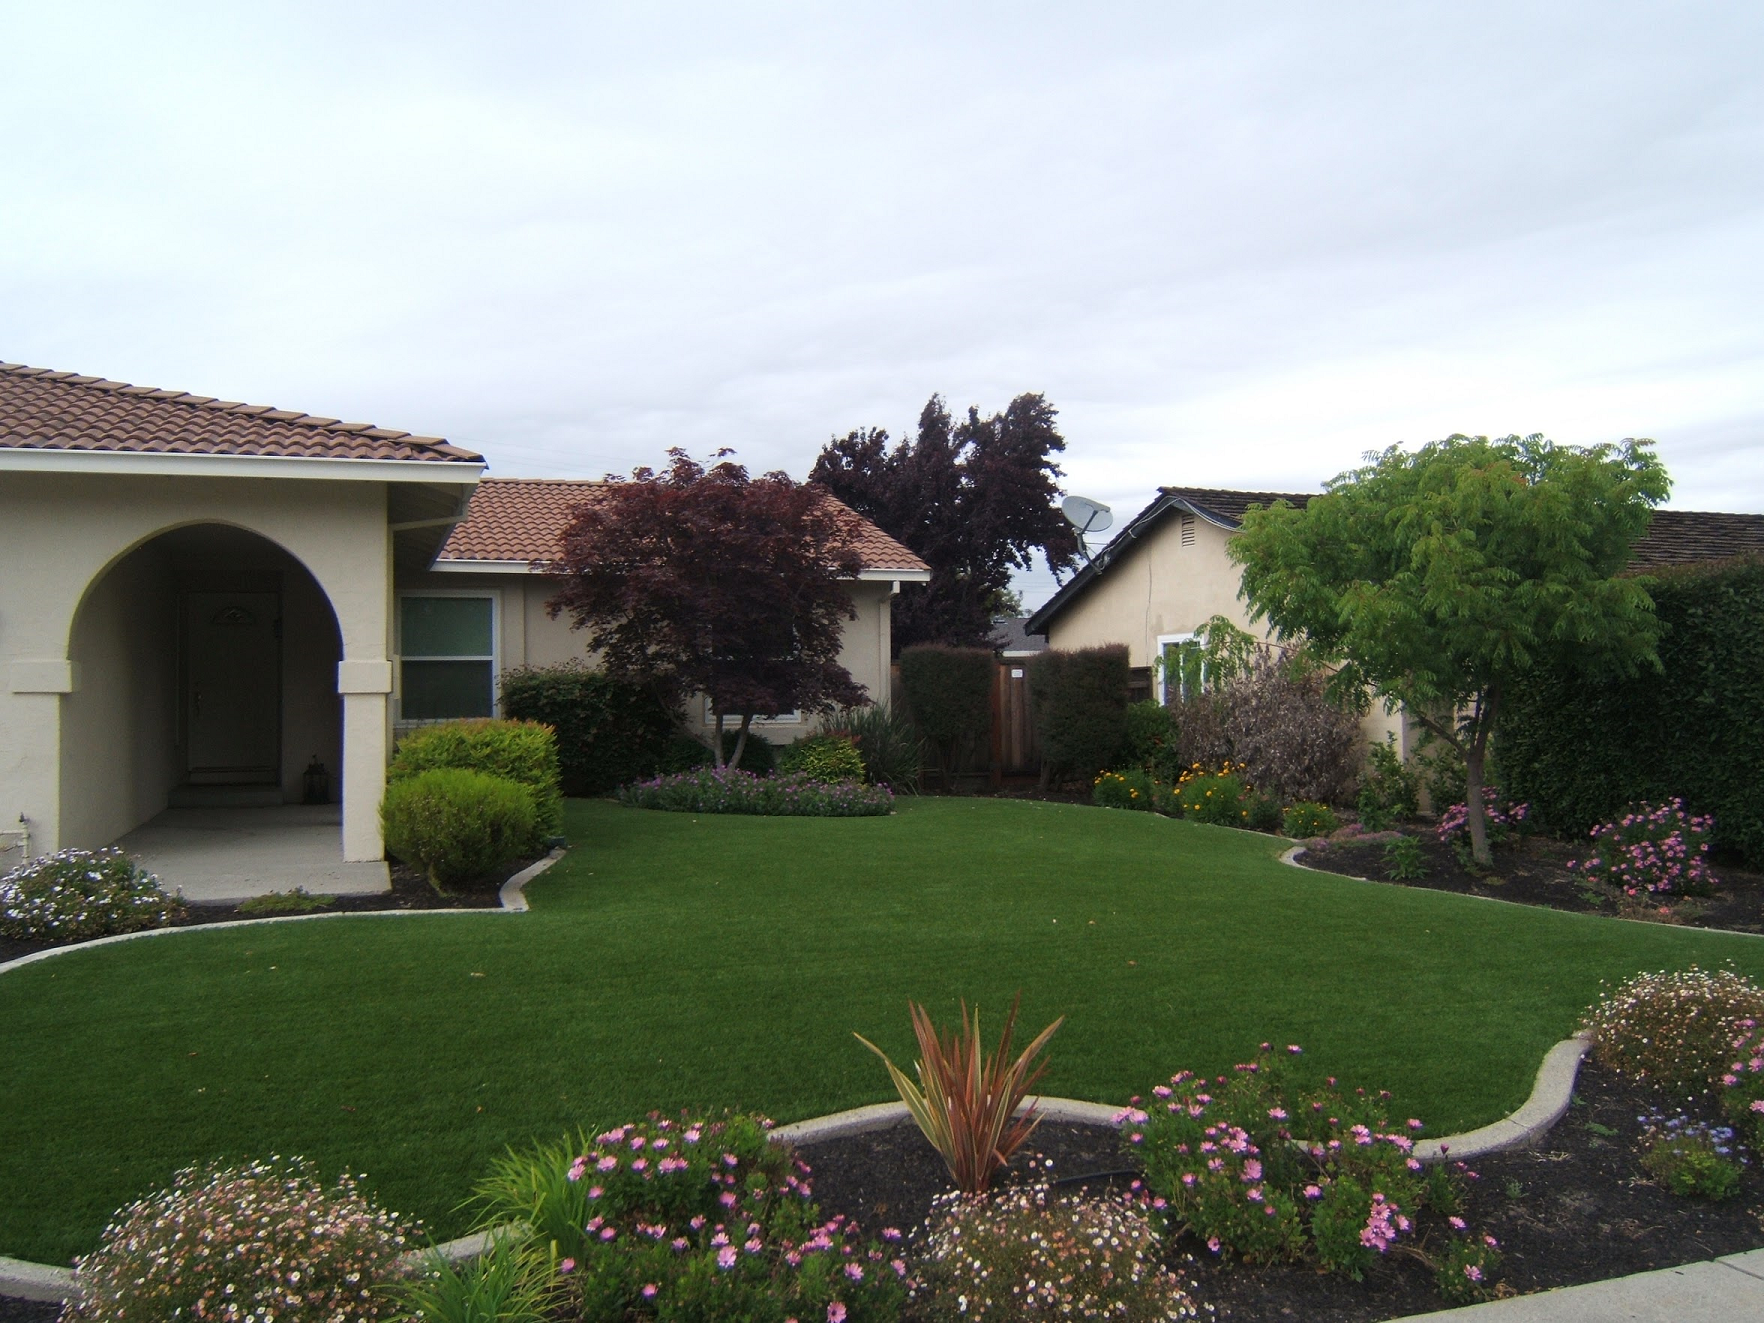 Lawn in Union City, California